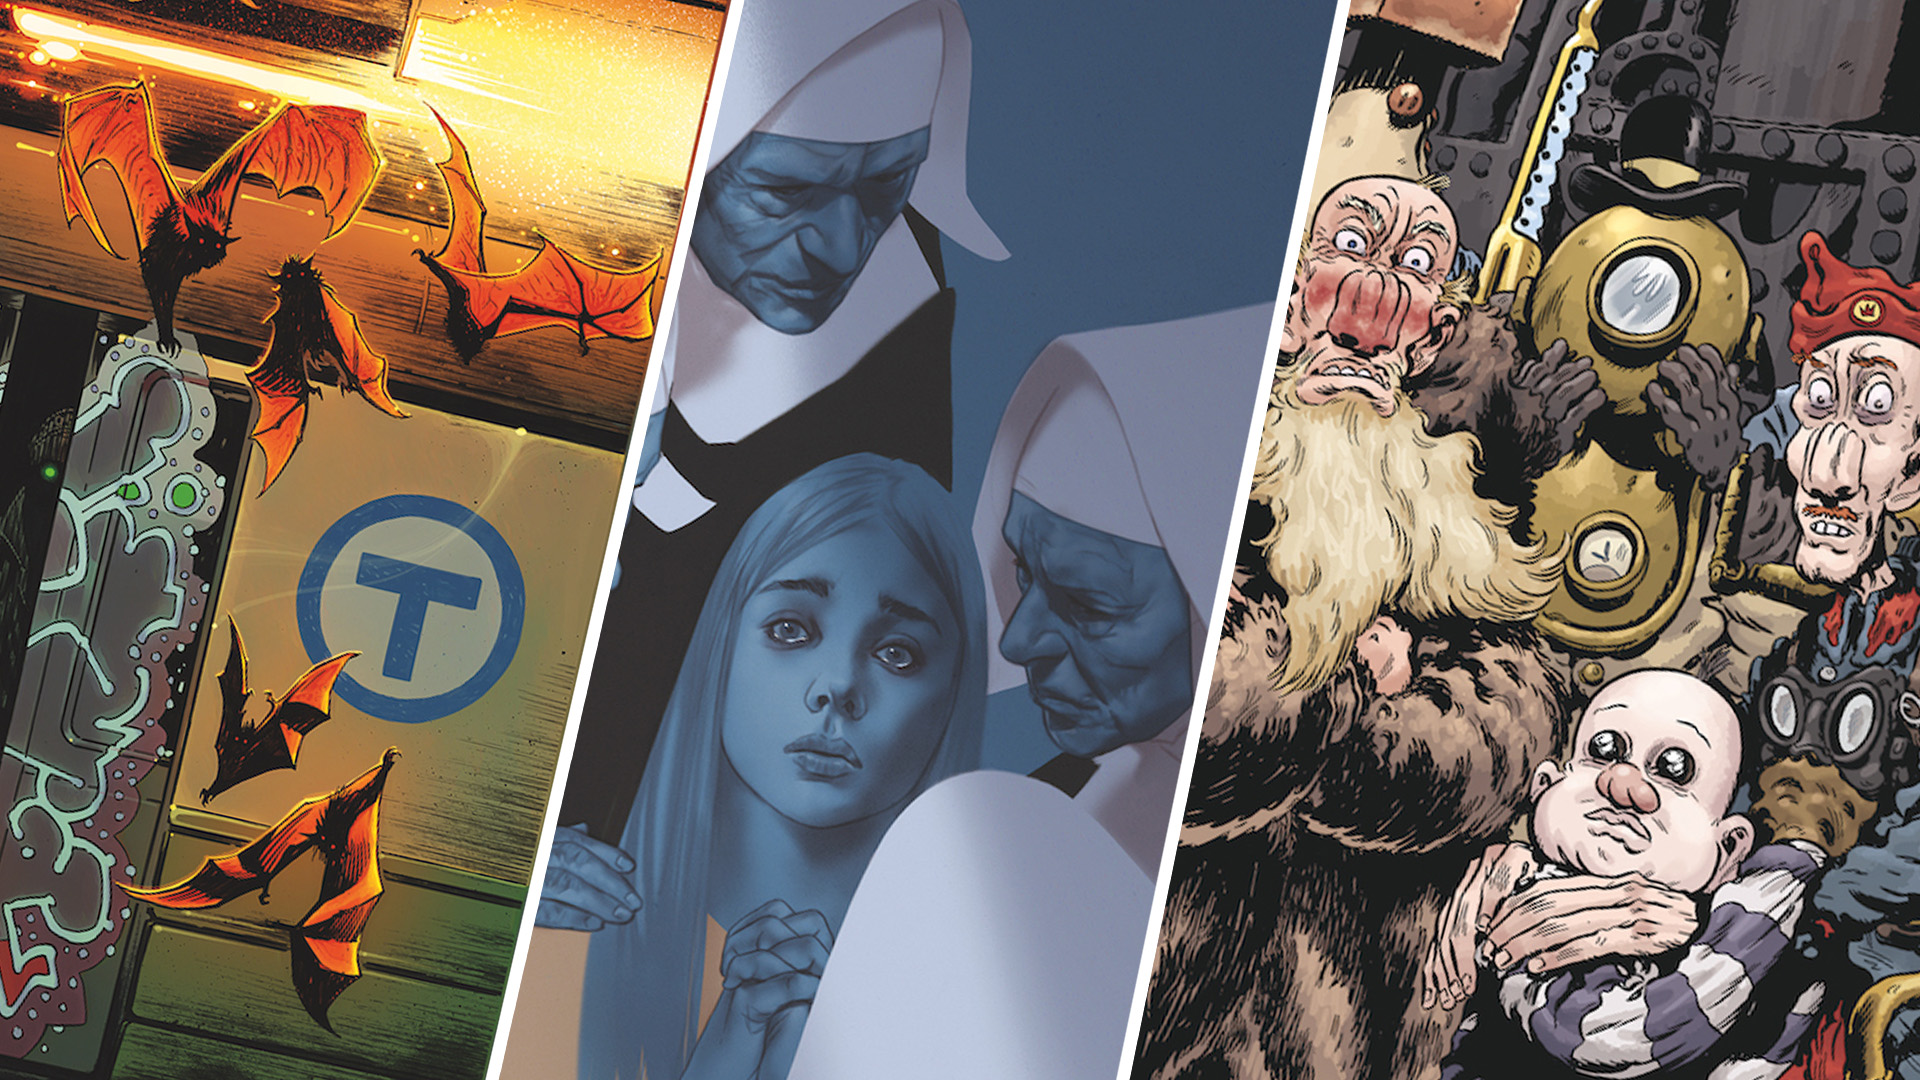 EXCLUSIVE Dark Horse Solicits: Sword Daughter, Last Stop on the Red Line, and Trout